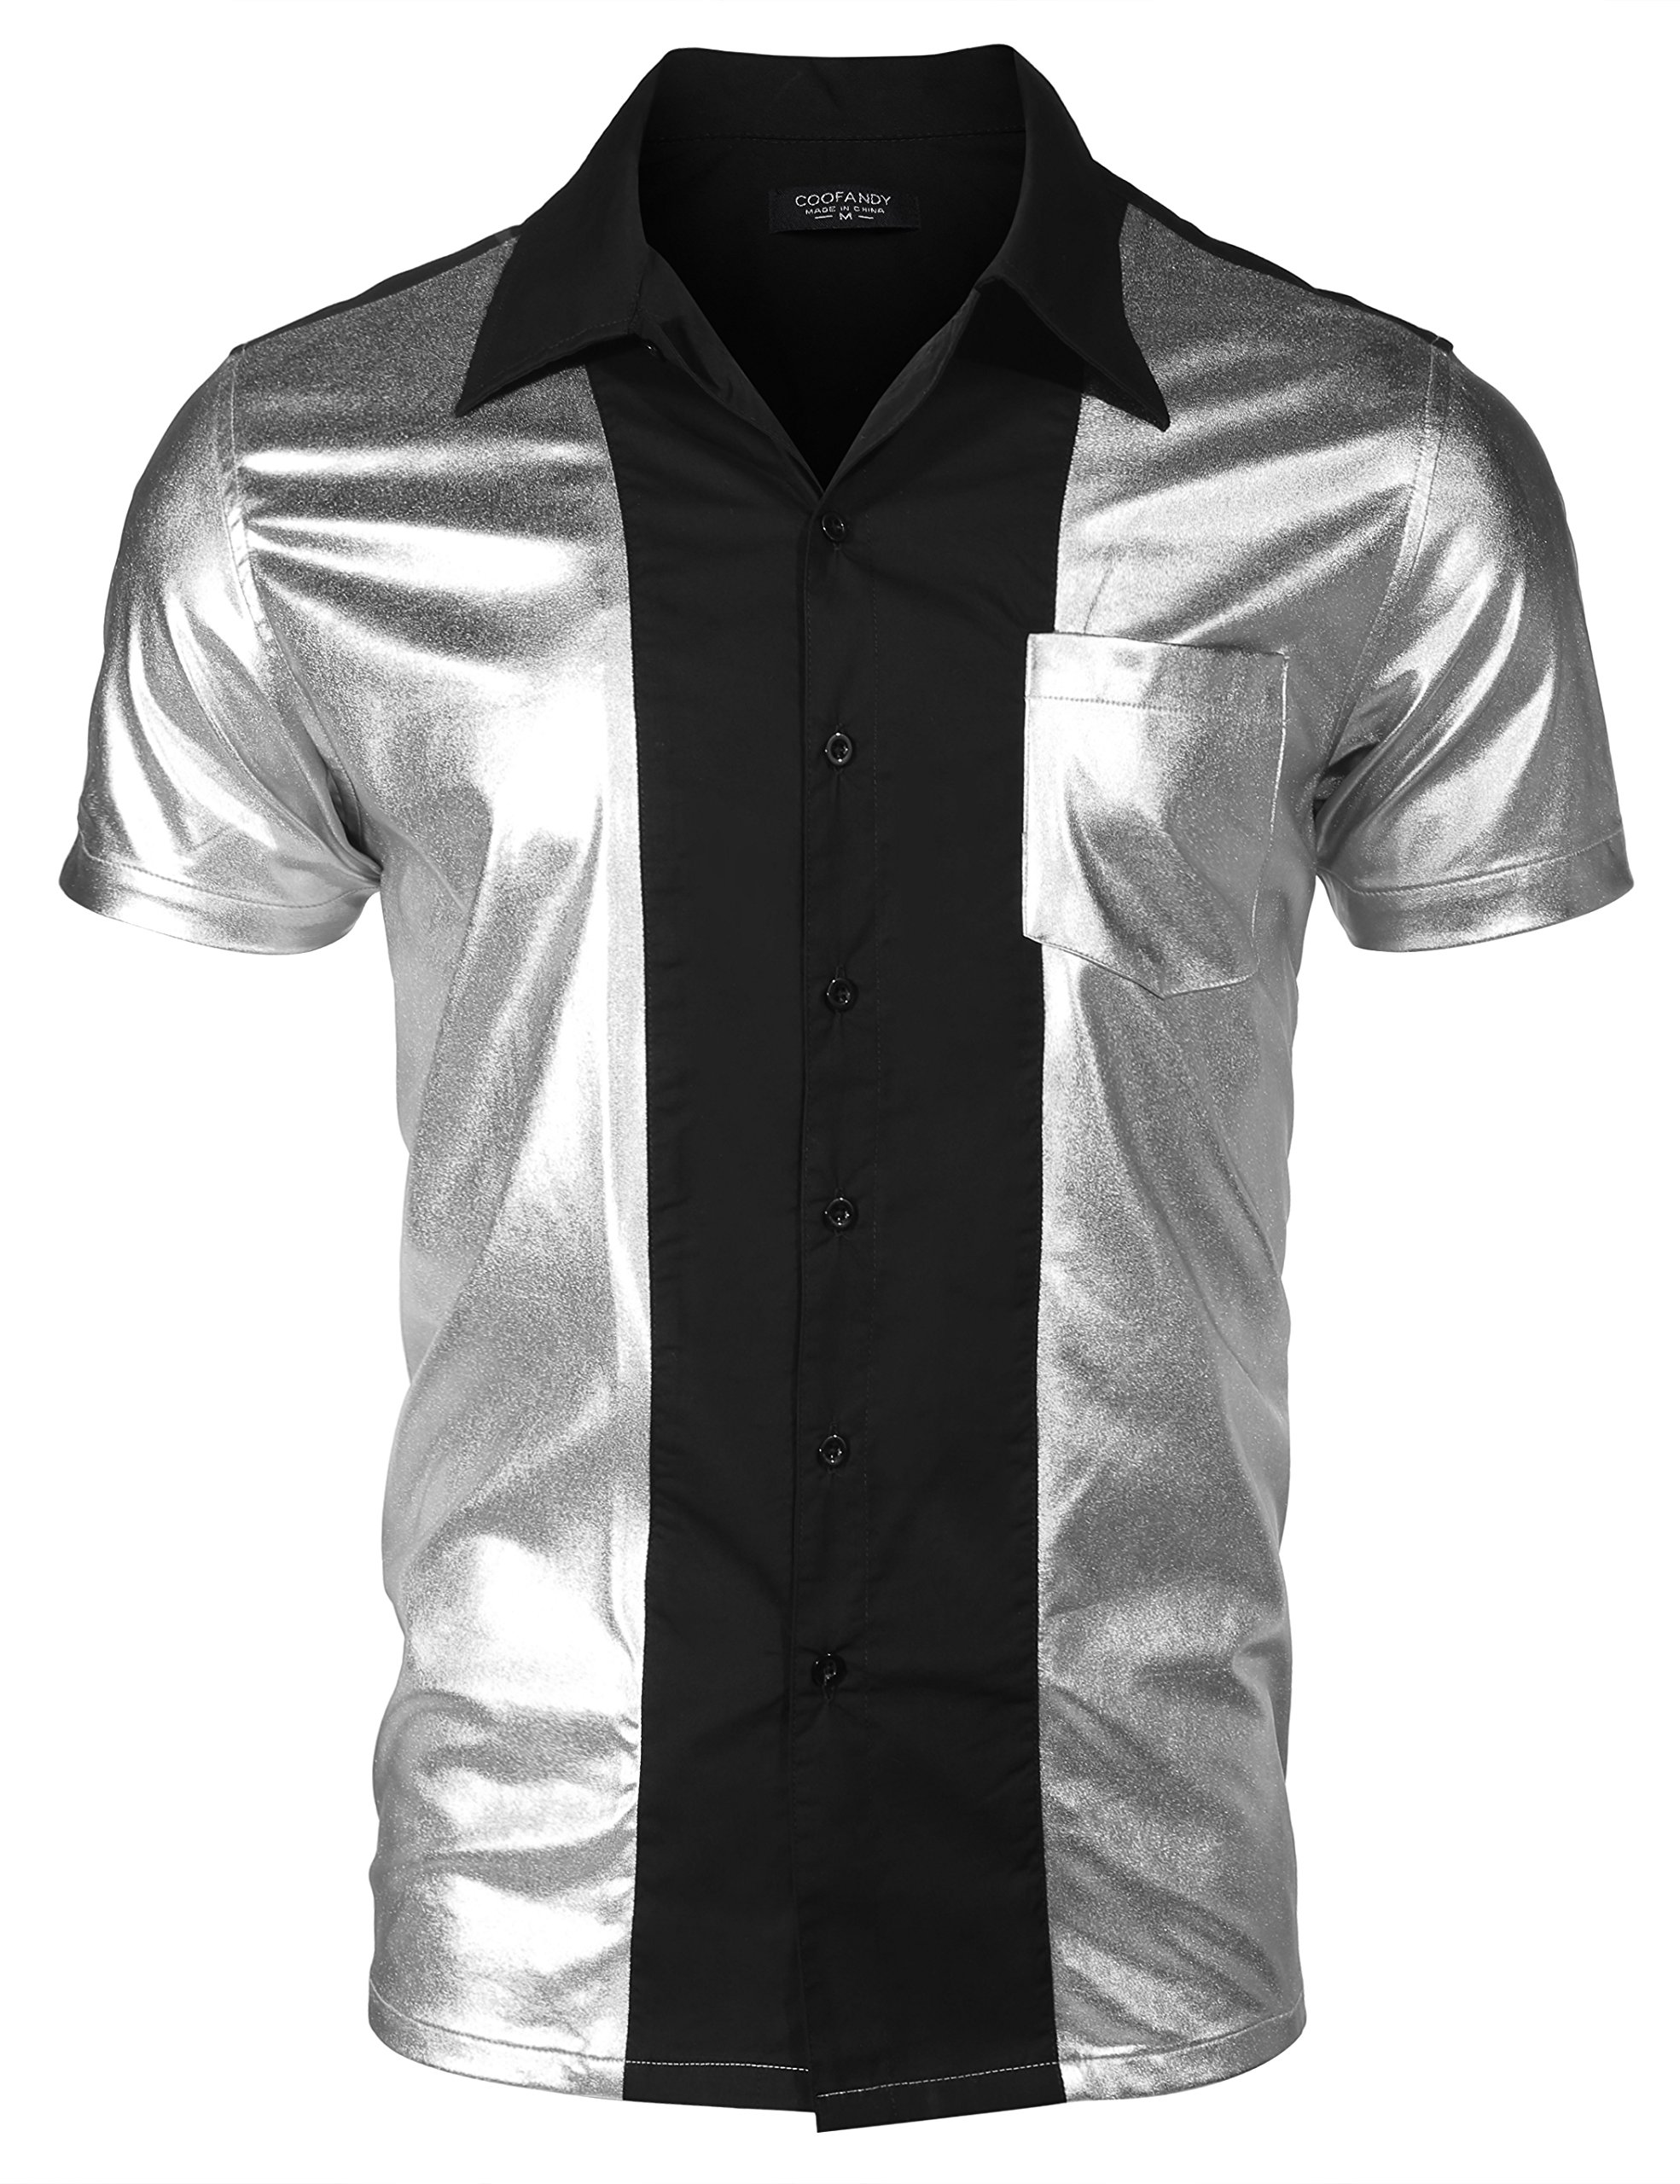 COOFANDY Mens Party Shirt Shiny Metallic Disco Nightclub Style Short Sleeves Button Down Bowling Shirts,Silver,XX-Large